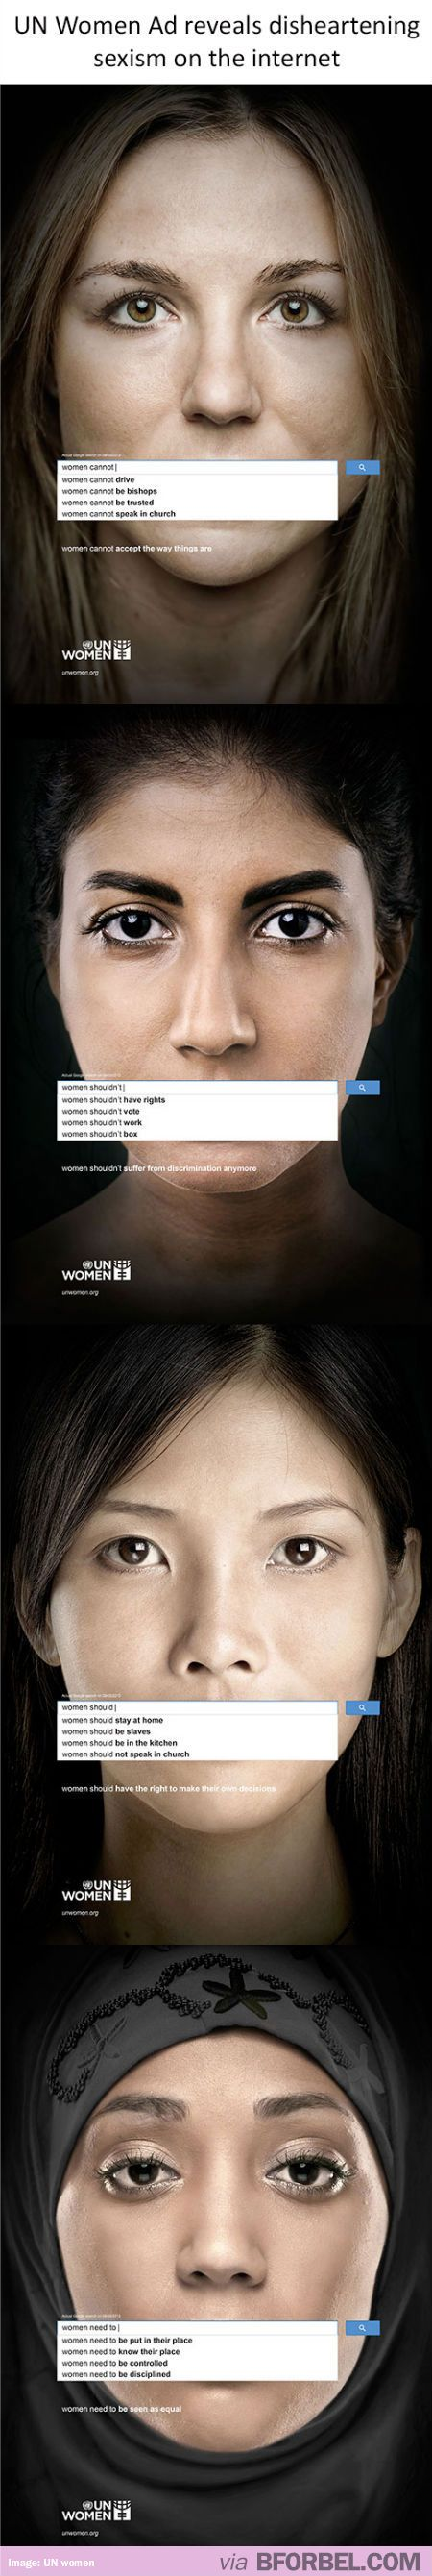 UN Women's Ad reveals disheartening sexism on the internet…